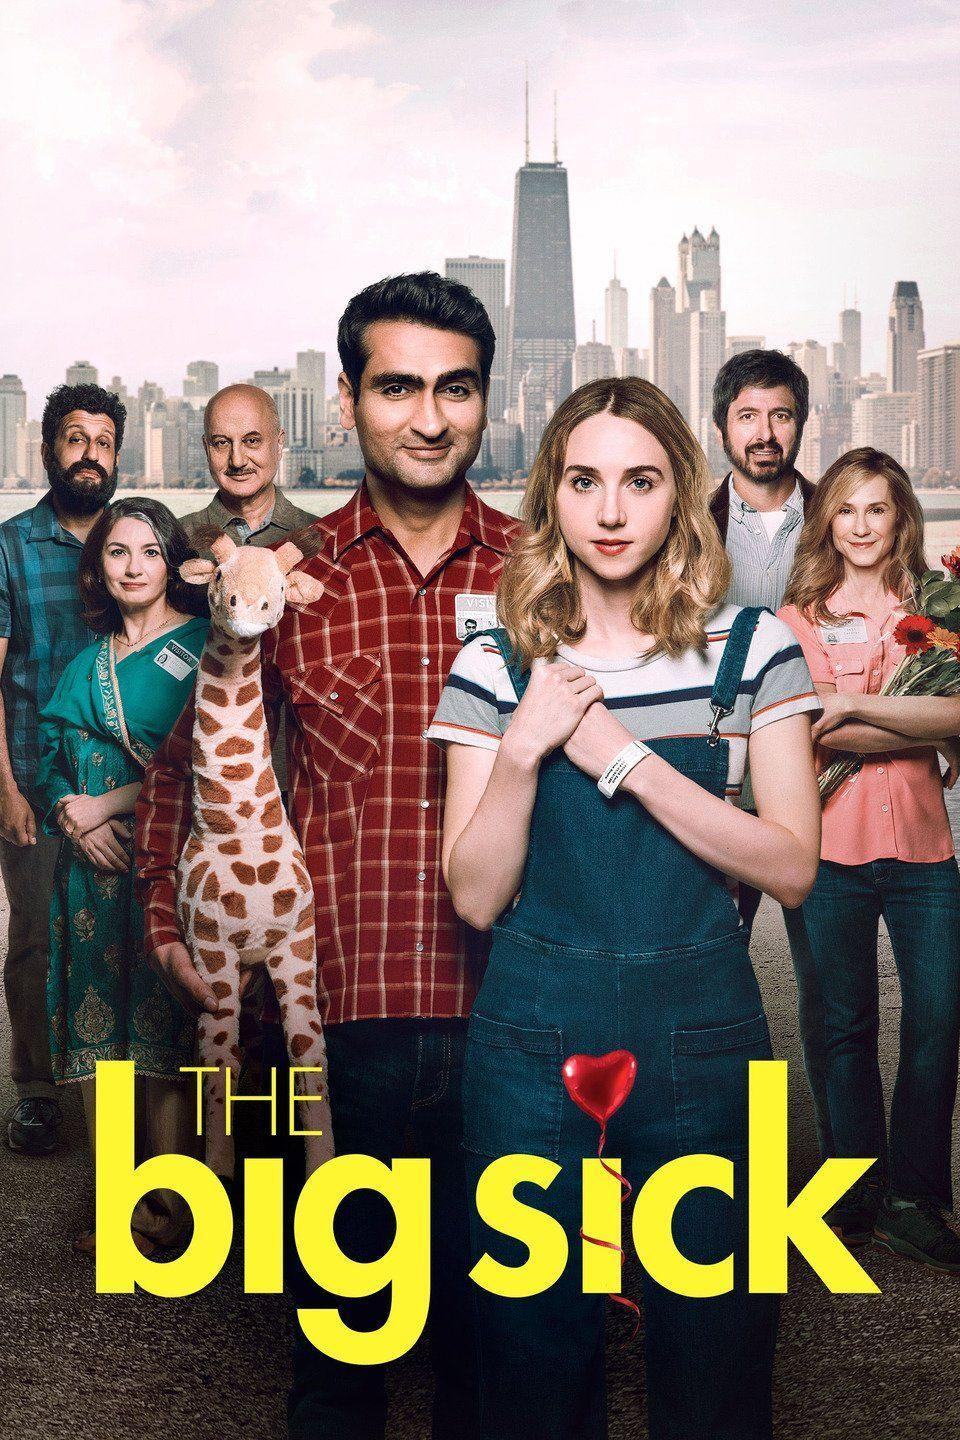 """<p><a class=""""link rapid-noclick-resp"""" href=""""https://www.amazon.com/Big-Sick-Amazon-Original-Movie/dp/B07193L7RD?tag=syn-yahoo-20&ascsubtag=%5Bartid%7C10067.g.15907978%5Bsrc%7Cyahoo-us"""" rel=""""nofollow noopener"""" target=""""_blank"""" data-ylk=""""slk:Watch Now"""">Watch Now</a></p><p>These days, Kumail Nanjiani and Emily V. Gordon are a comedic power couple. But, as <em>The Big Sick</em> shows, they almost didn't end up together at all. Najiani and Gordon co-wrote this rom-com about the very real, very traumatic medical emergency that brought them together.</p>"""